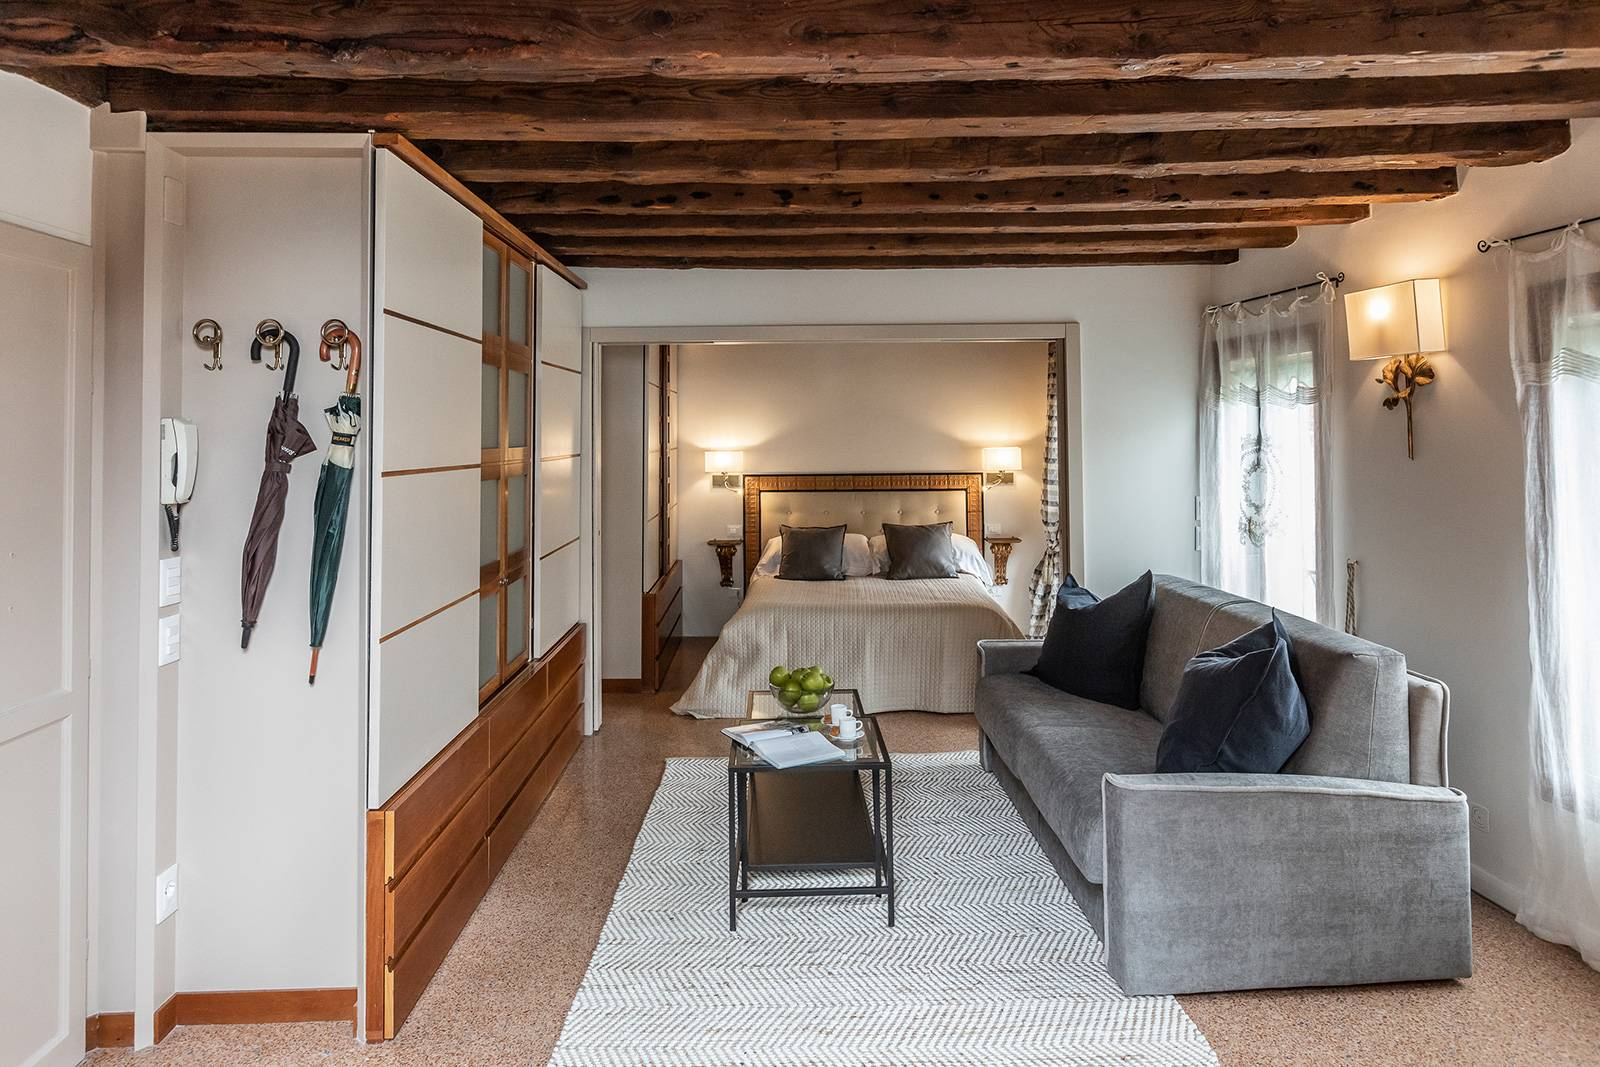 the antique wooden beams and the Terrazzo Veneziano flooring are authentic